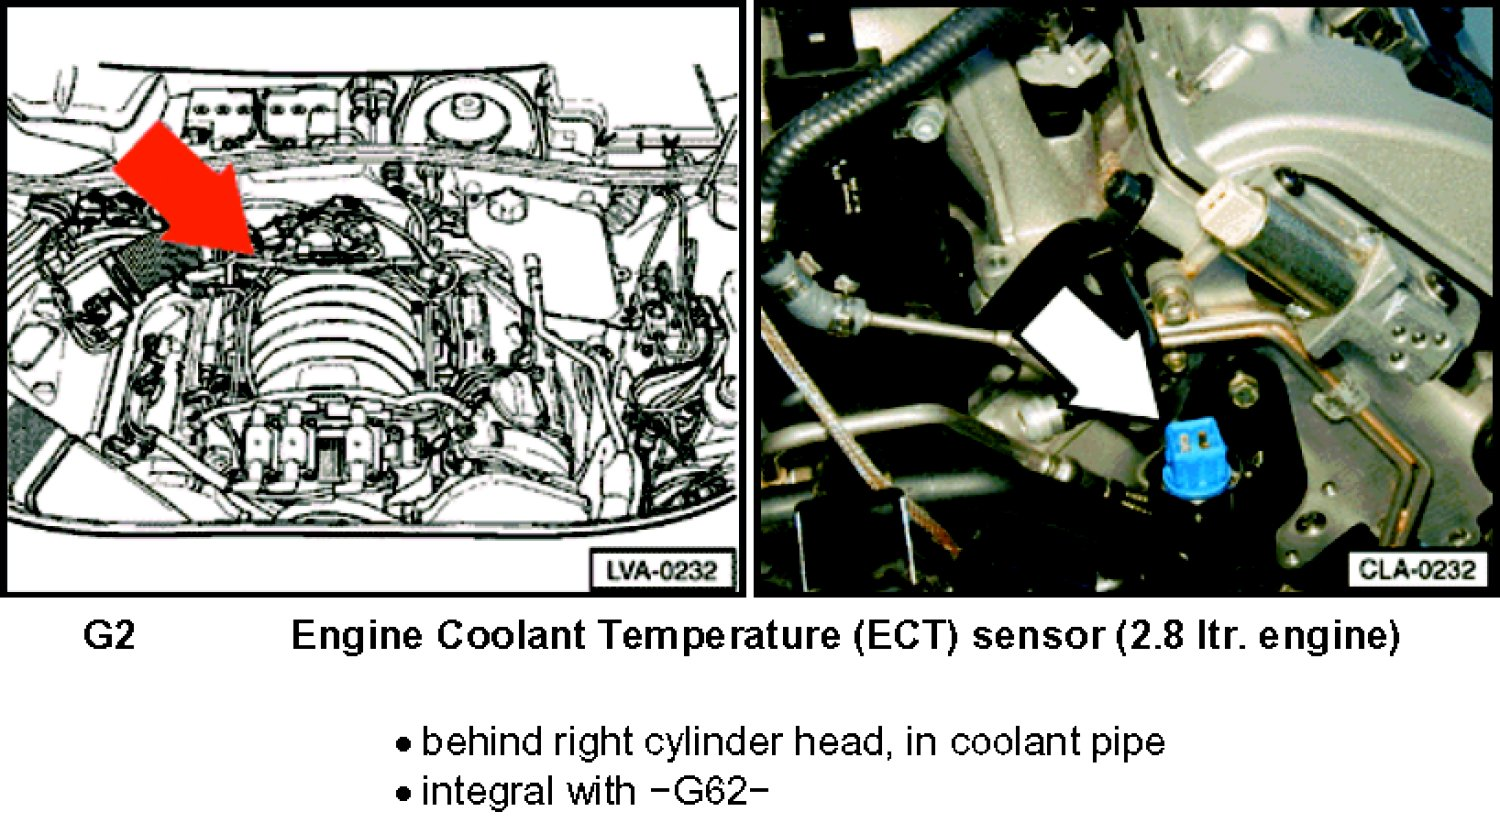 Dealer Wants  280 To Change Coolant Temp Sensor Wtf